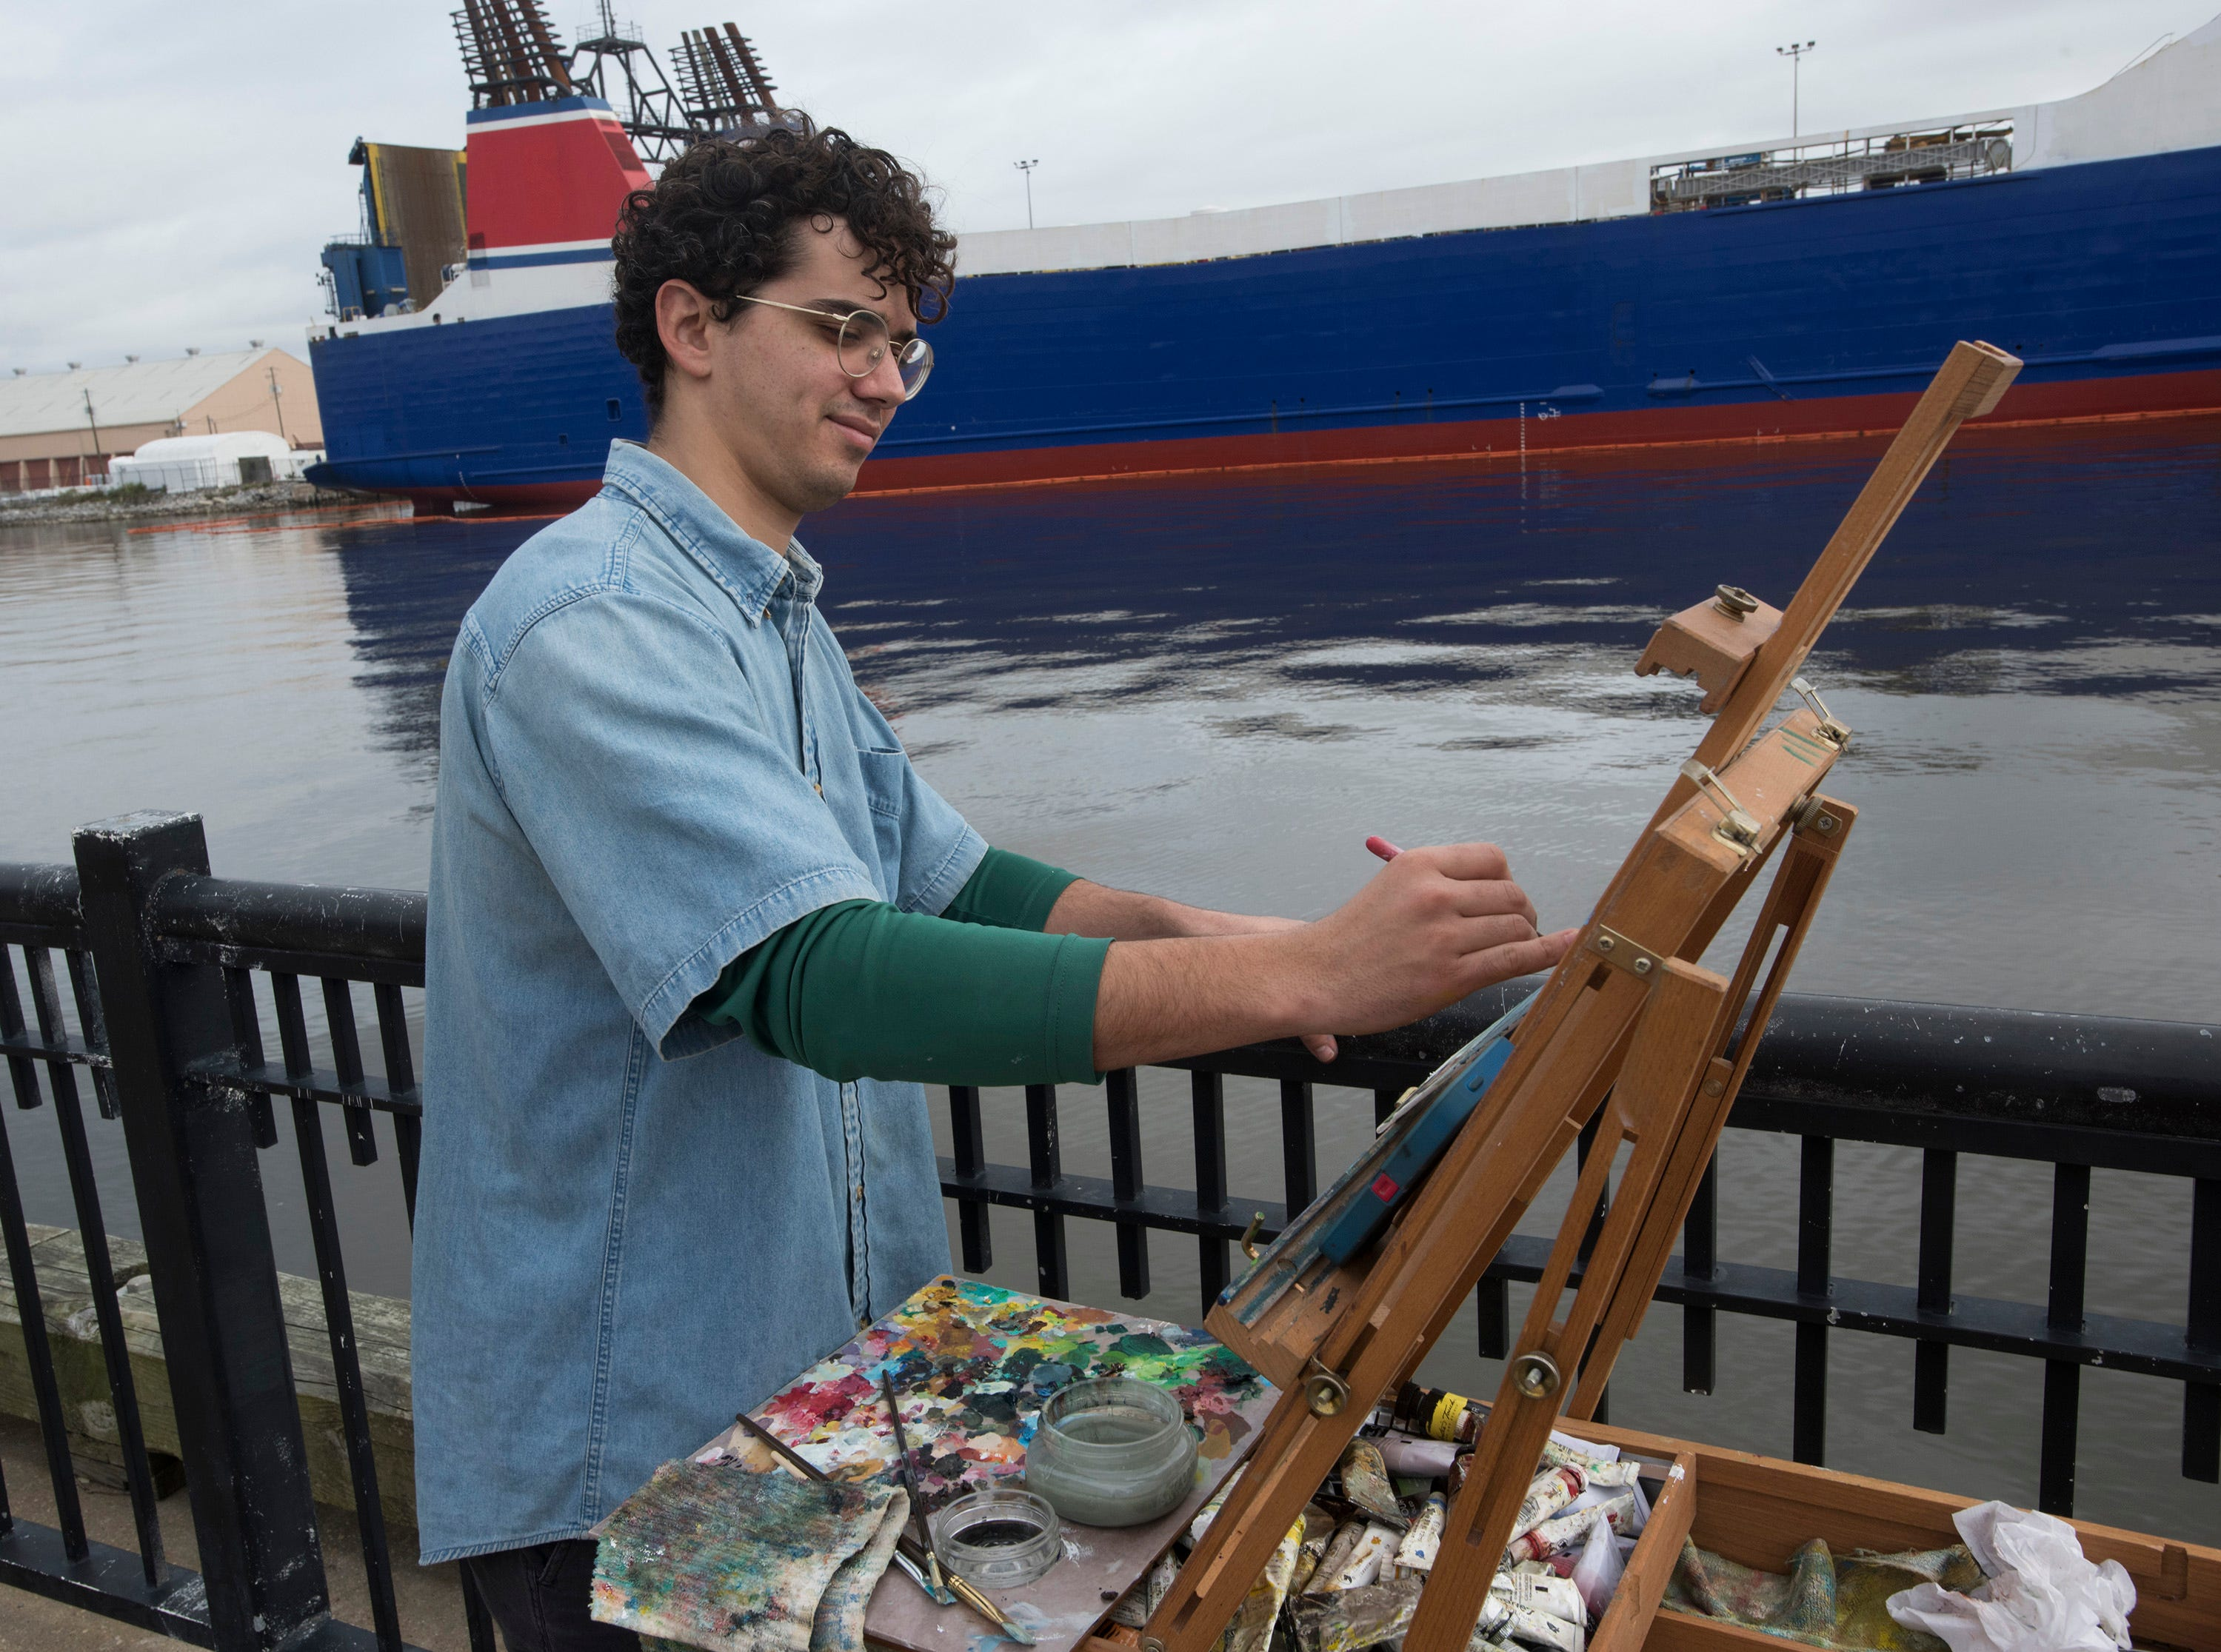 Sam Ruiz paints the tall ship Lynx docked in Pensacola on Monday, Feb. 4, 2019. The recreation of a 19th-century schooner is back in Pensacola and moored at Plaza de Luna. The living history museum will be in City of Five Flags offering tours to the public through March 11.